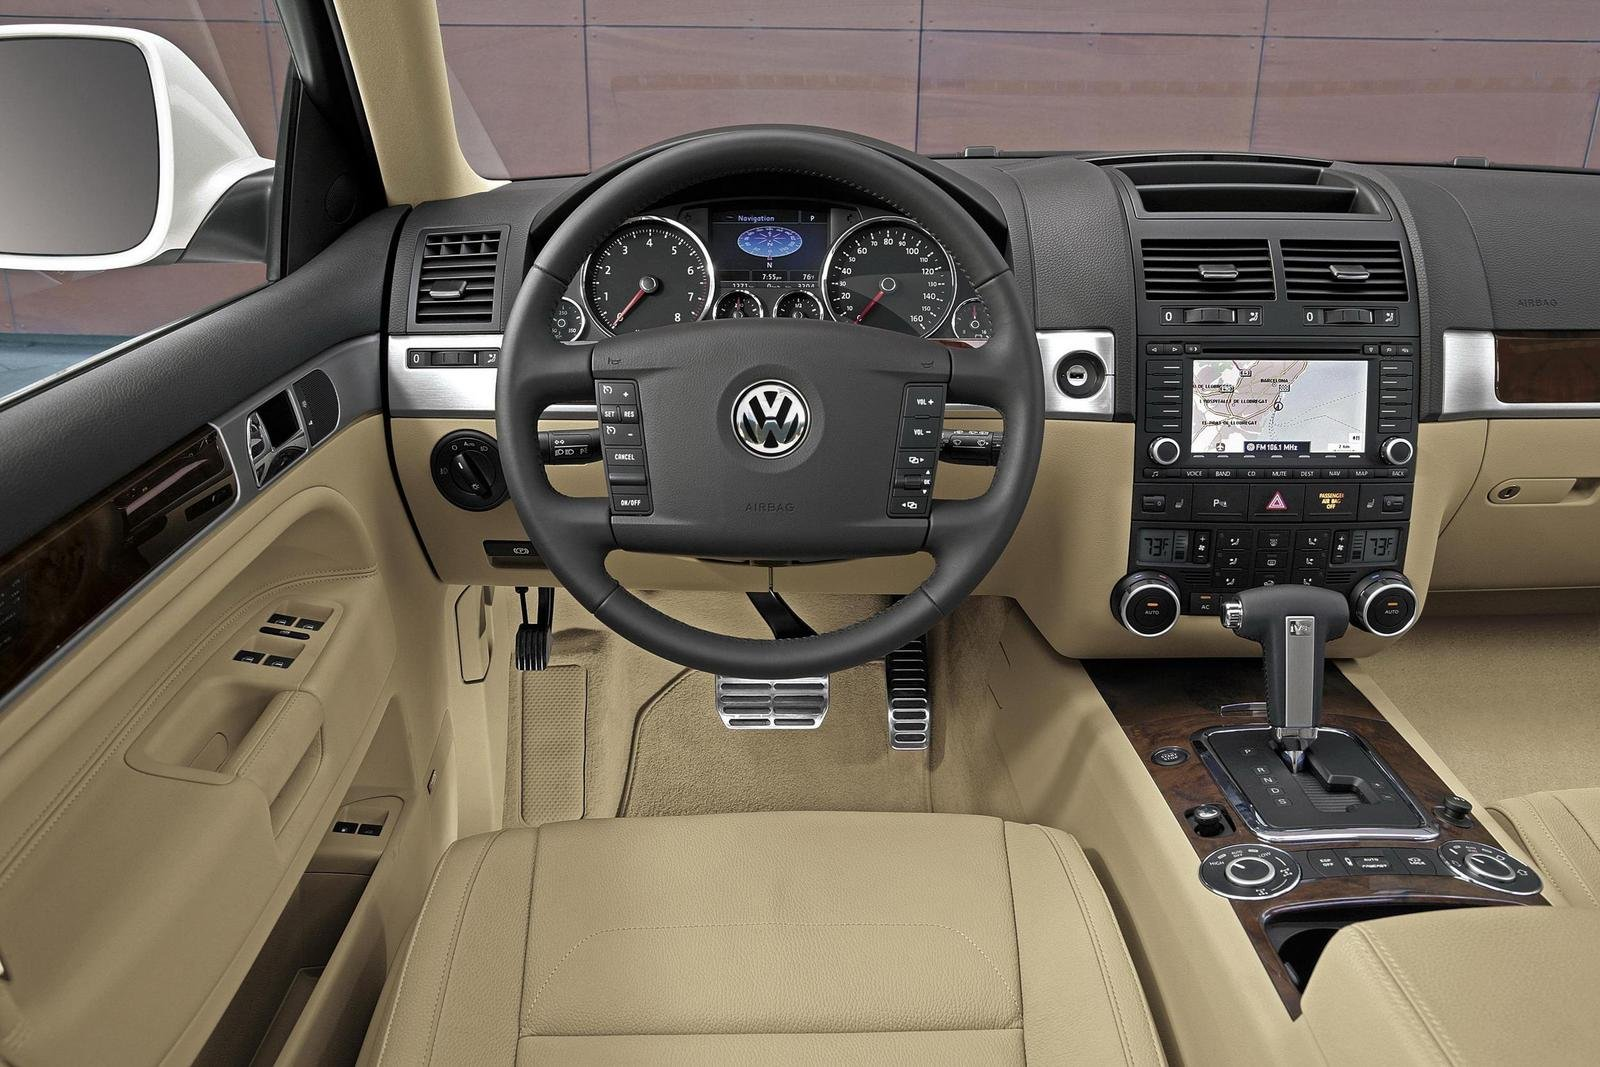 2008 volkswagen touareg 2 size 257 kb resolution 1600x1067 type link file